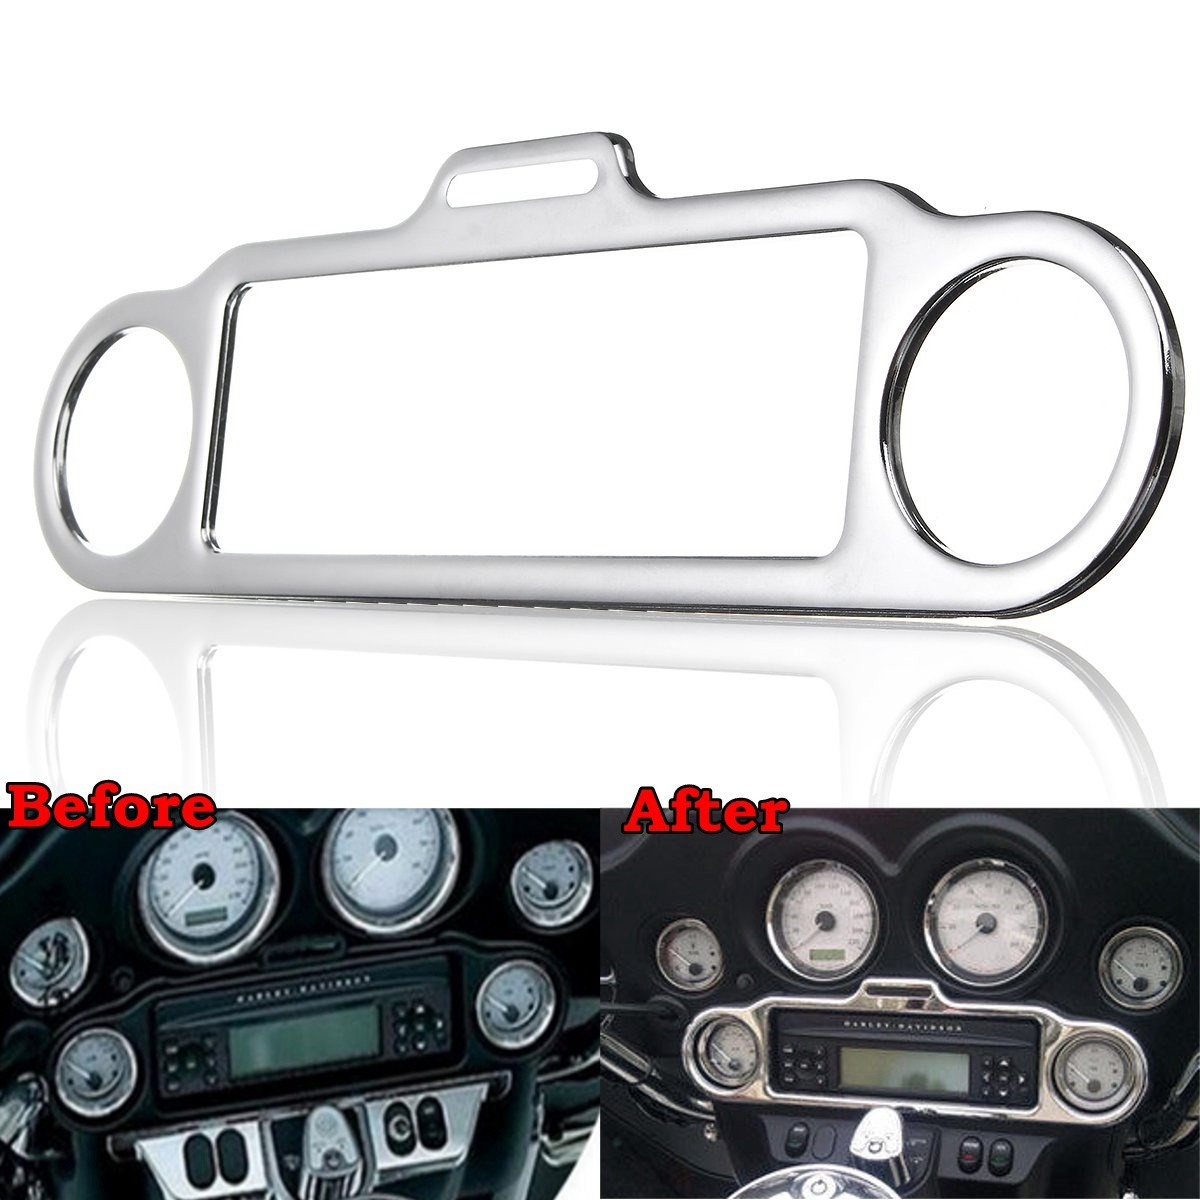 Chrome Stereo Accent Trim Ring Cover For Harley-Davidson Electra Street Glide Touring